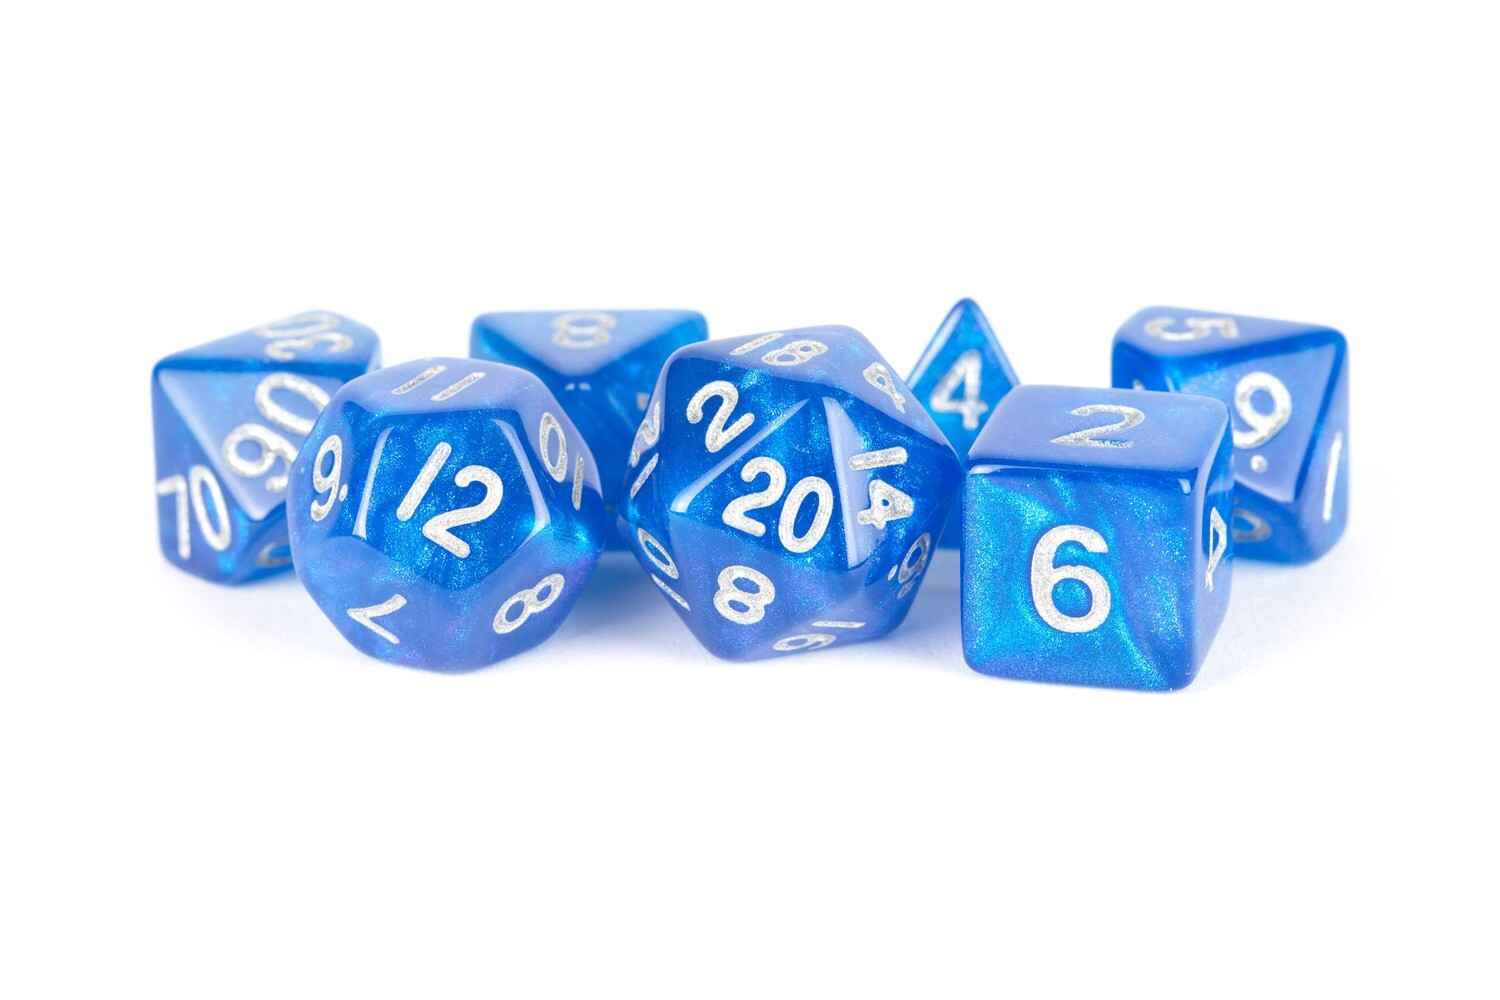 16mm Polyhedral 7 Die Dice Set Stardust Blue with Silver RPG Tabletop Games Gaming Board Card